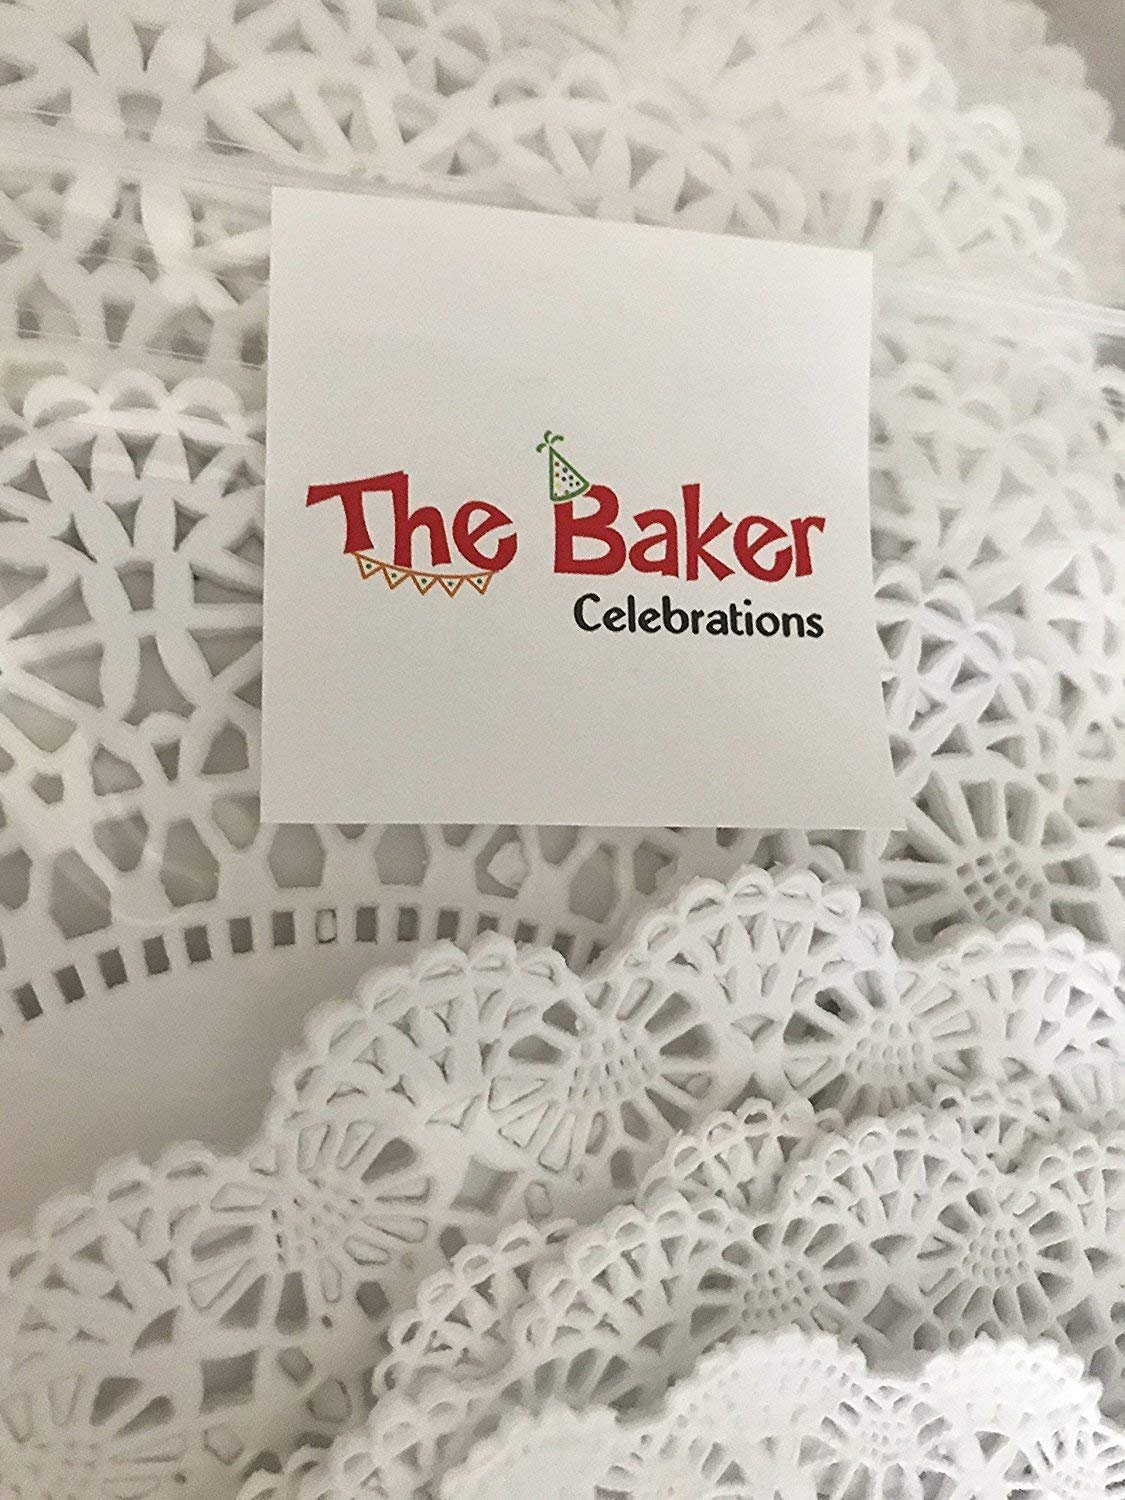 Round paper Lace Table Doilies – 4, 5, 6, 8, 10 and 12 inch Assorted Sizes; White Decorative Tableware papers Placemats, (Variety pack of 120 – 20 of each) by The Baker Celebrations (Image #3)